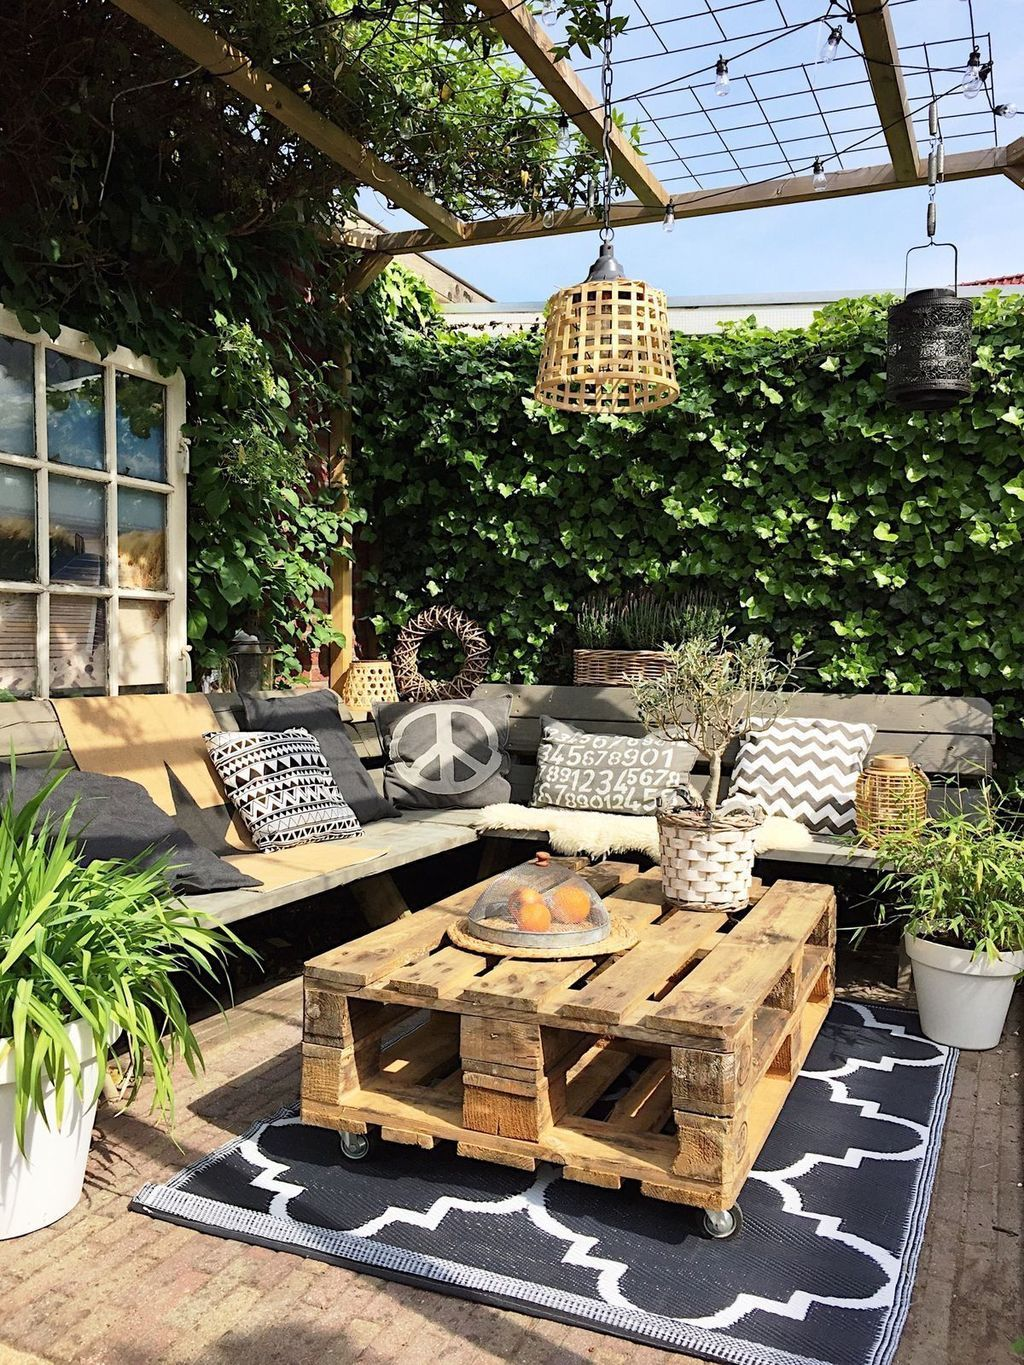 40 Comfortable Backyard Decoration Ideas For Your Summer You May